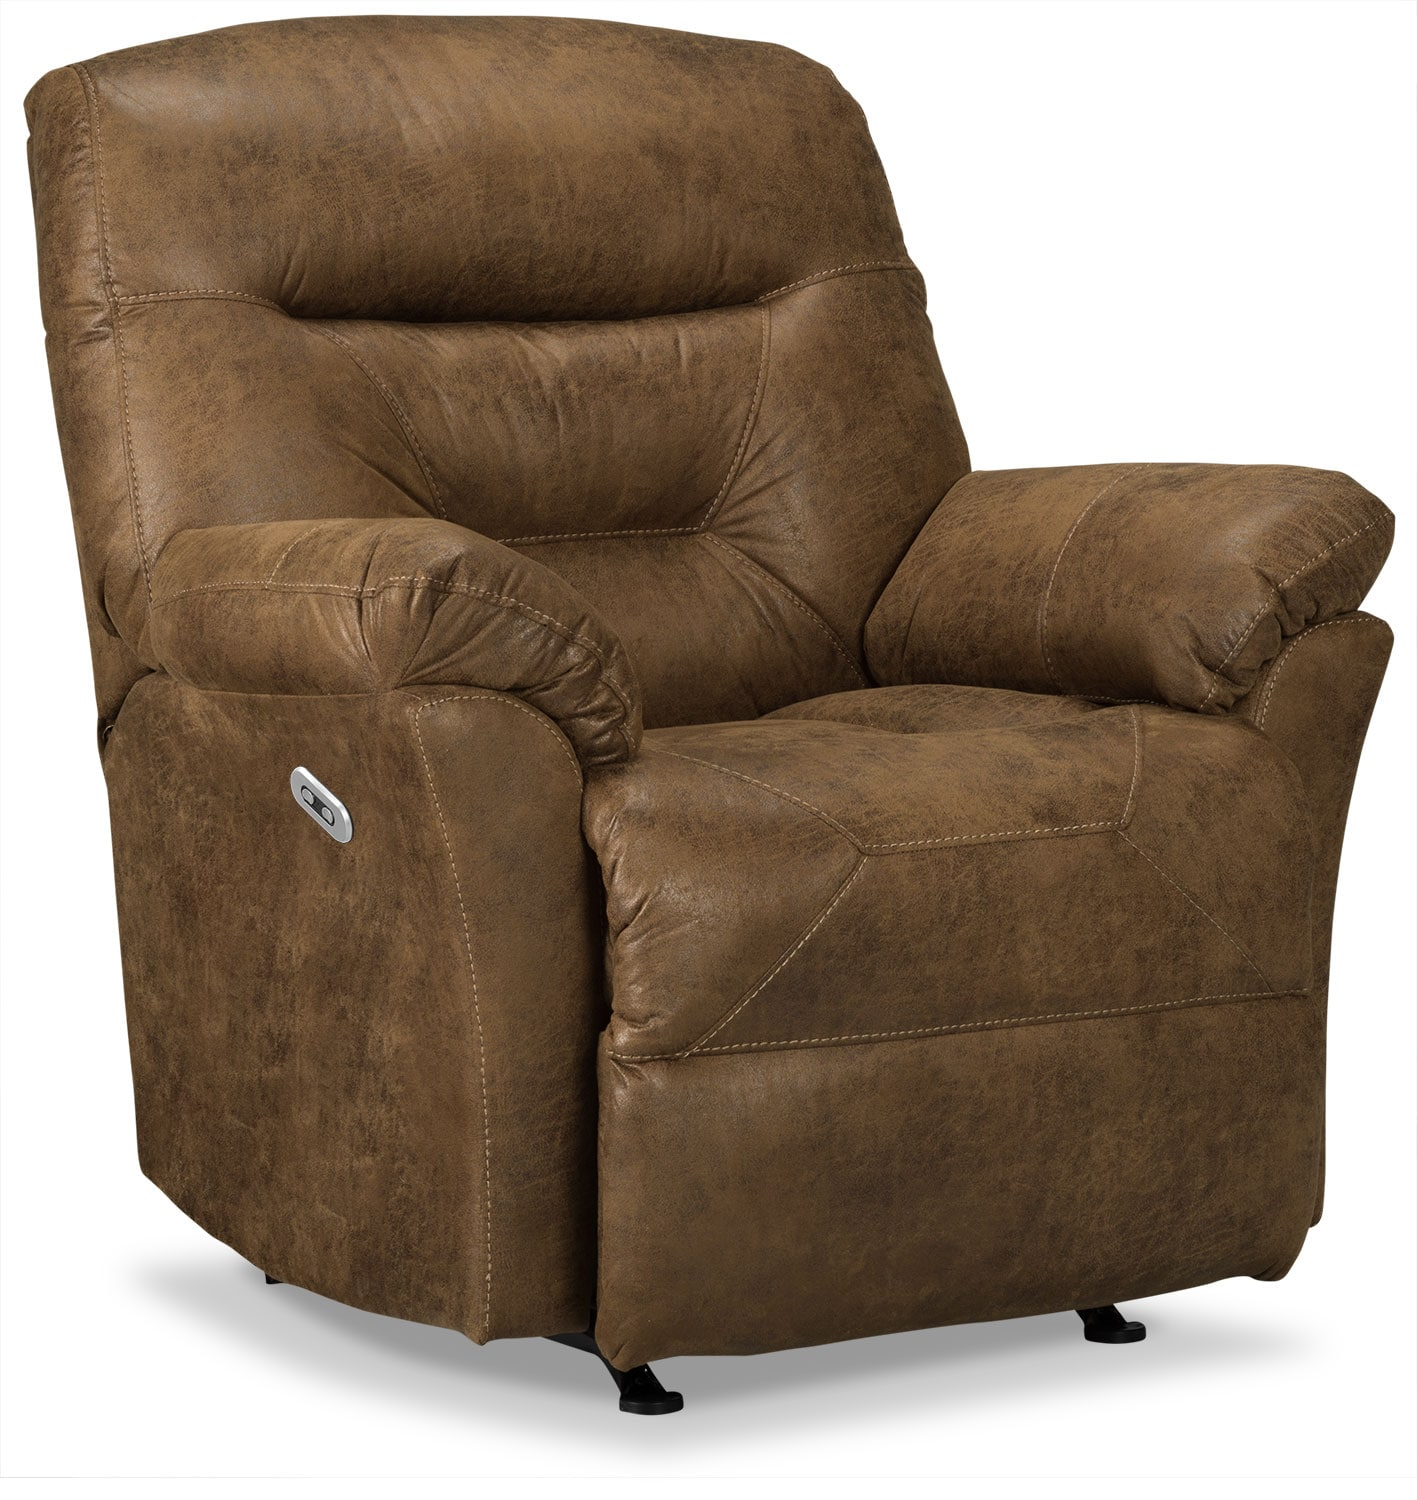 Designed2B Recliner 4579 Leather-Look Fabric Power Recliner - Stout